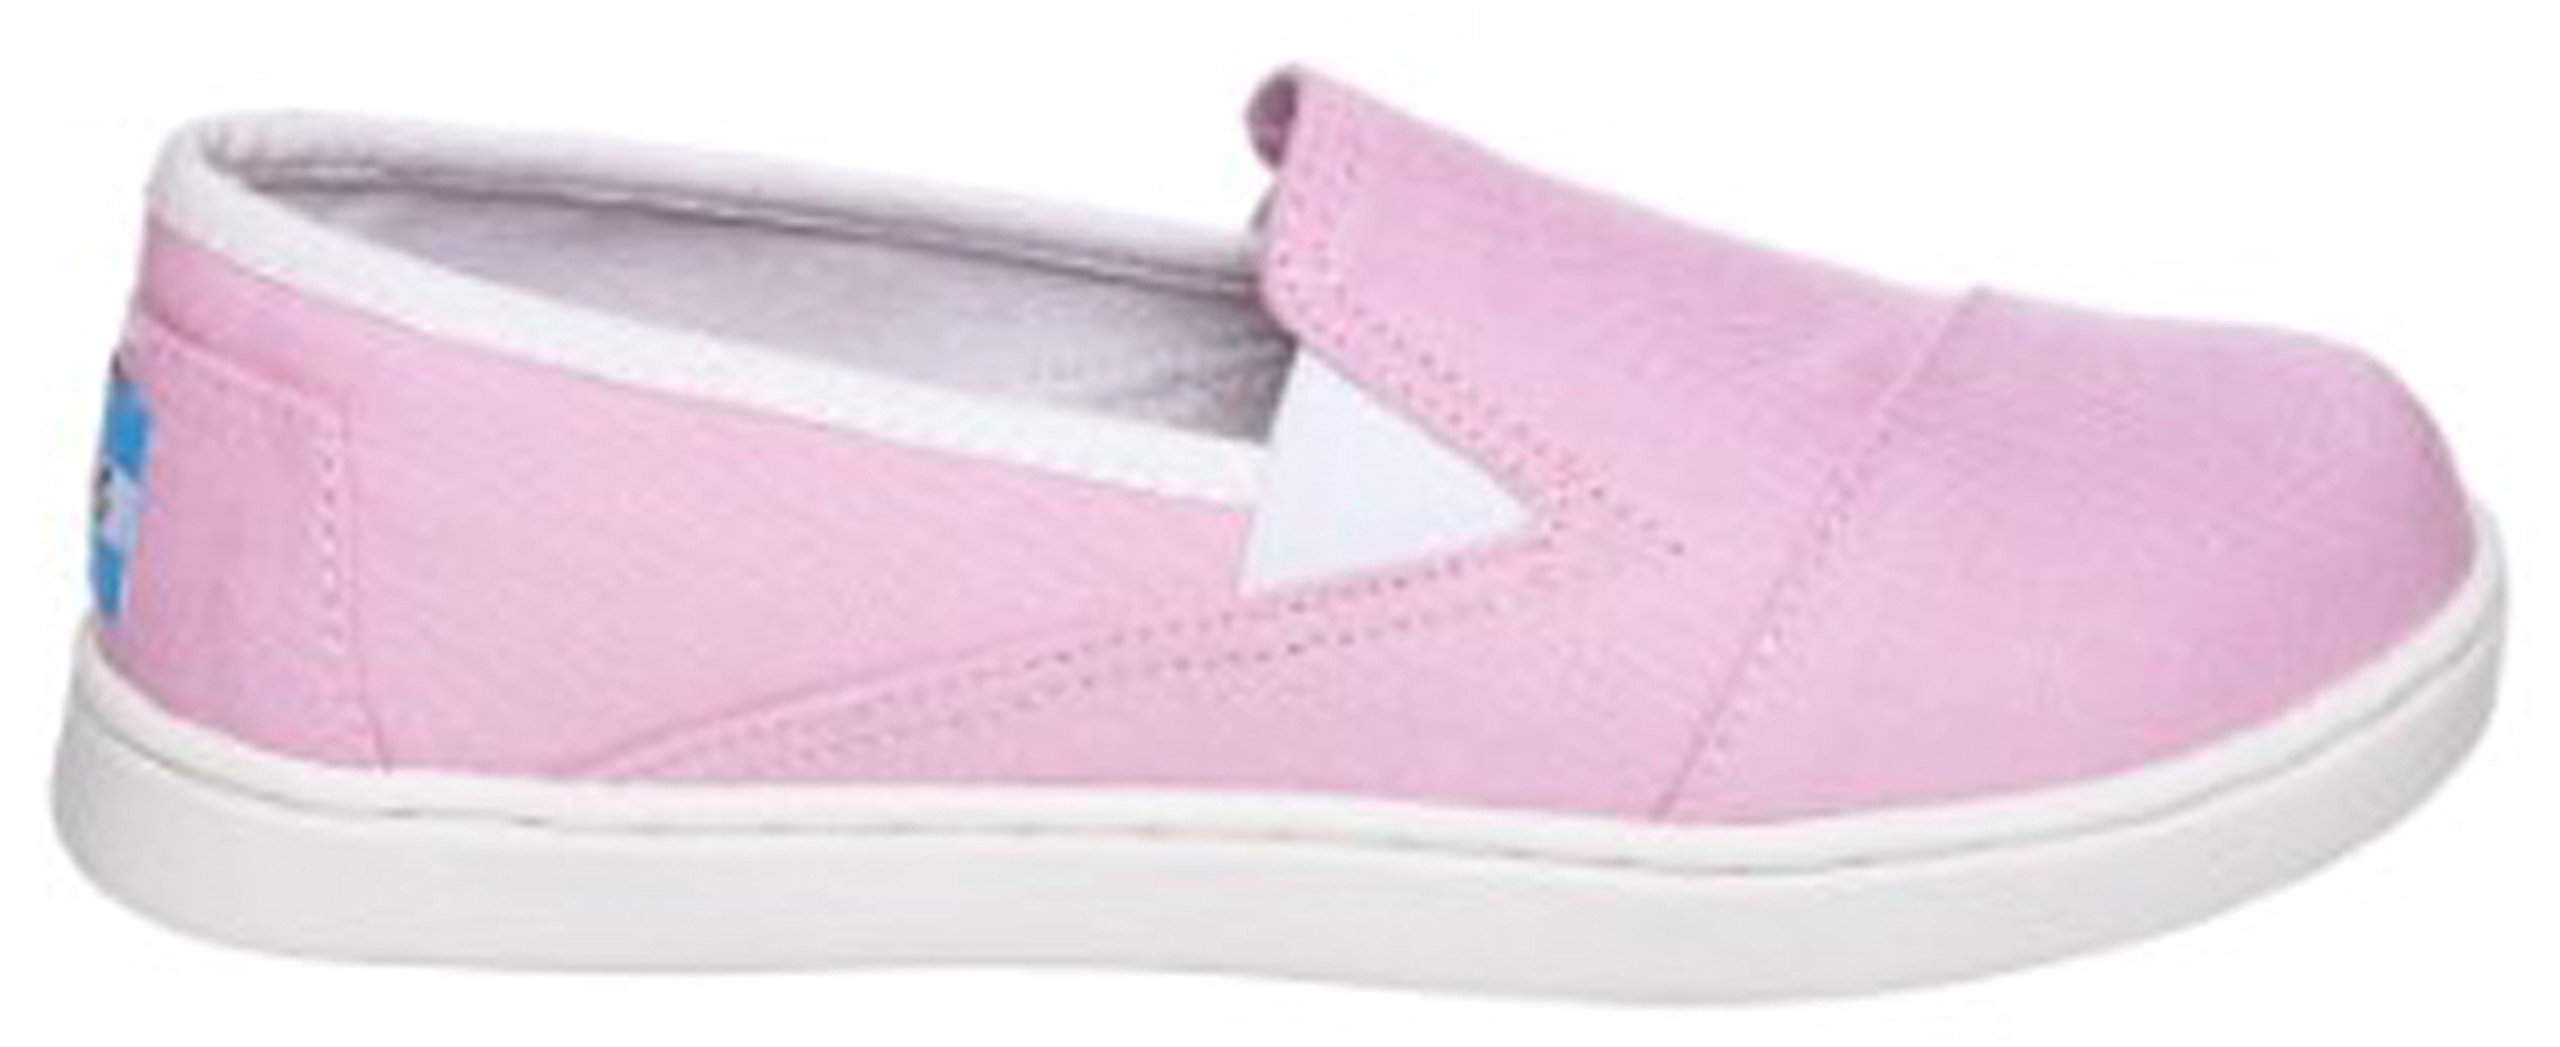 Toms Avalon Sneaker Pink Canvas 10004747 Youth 5.5